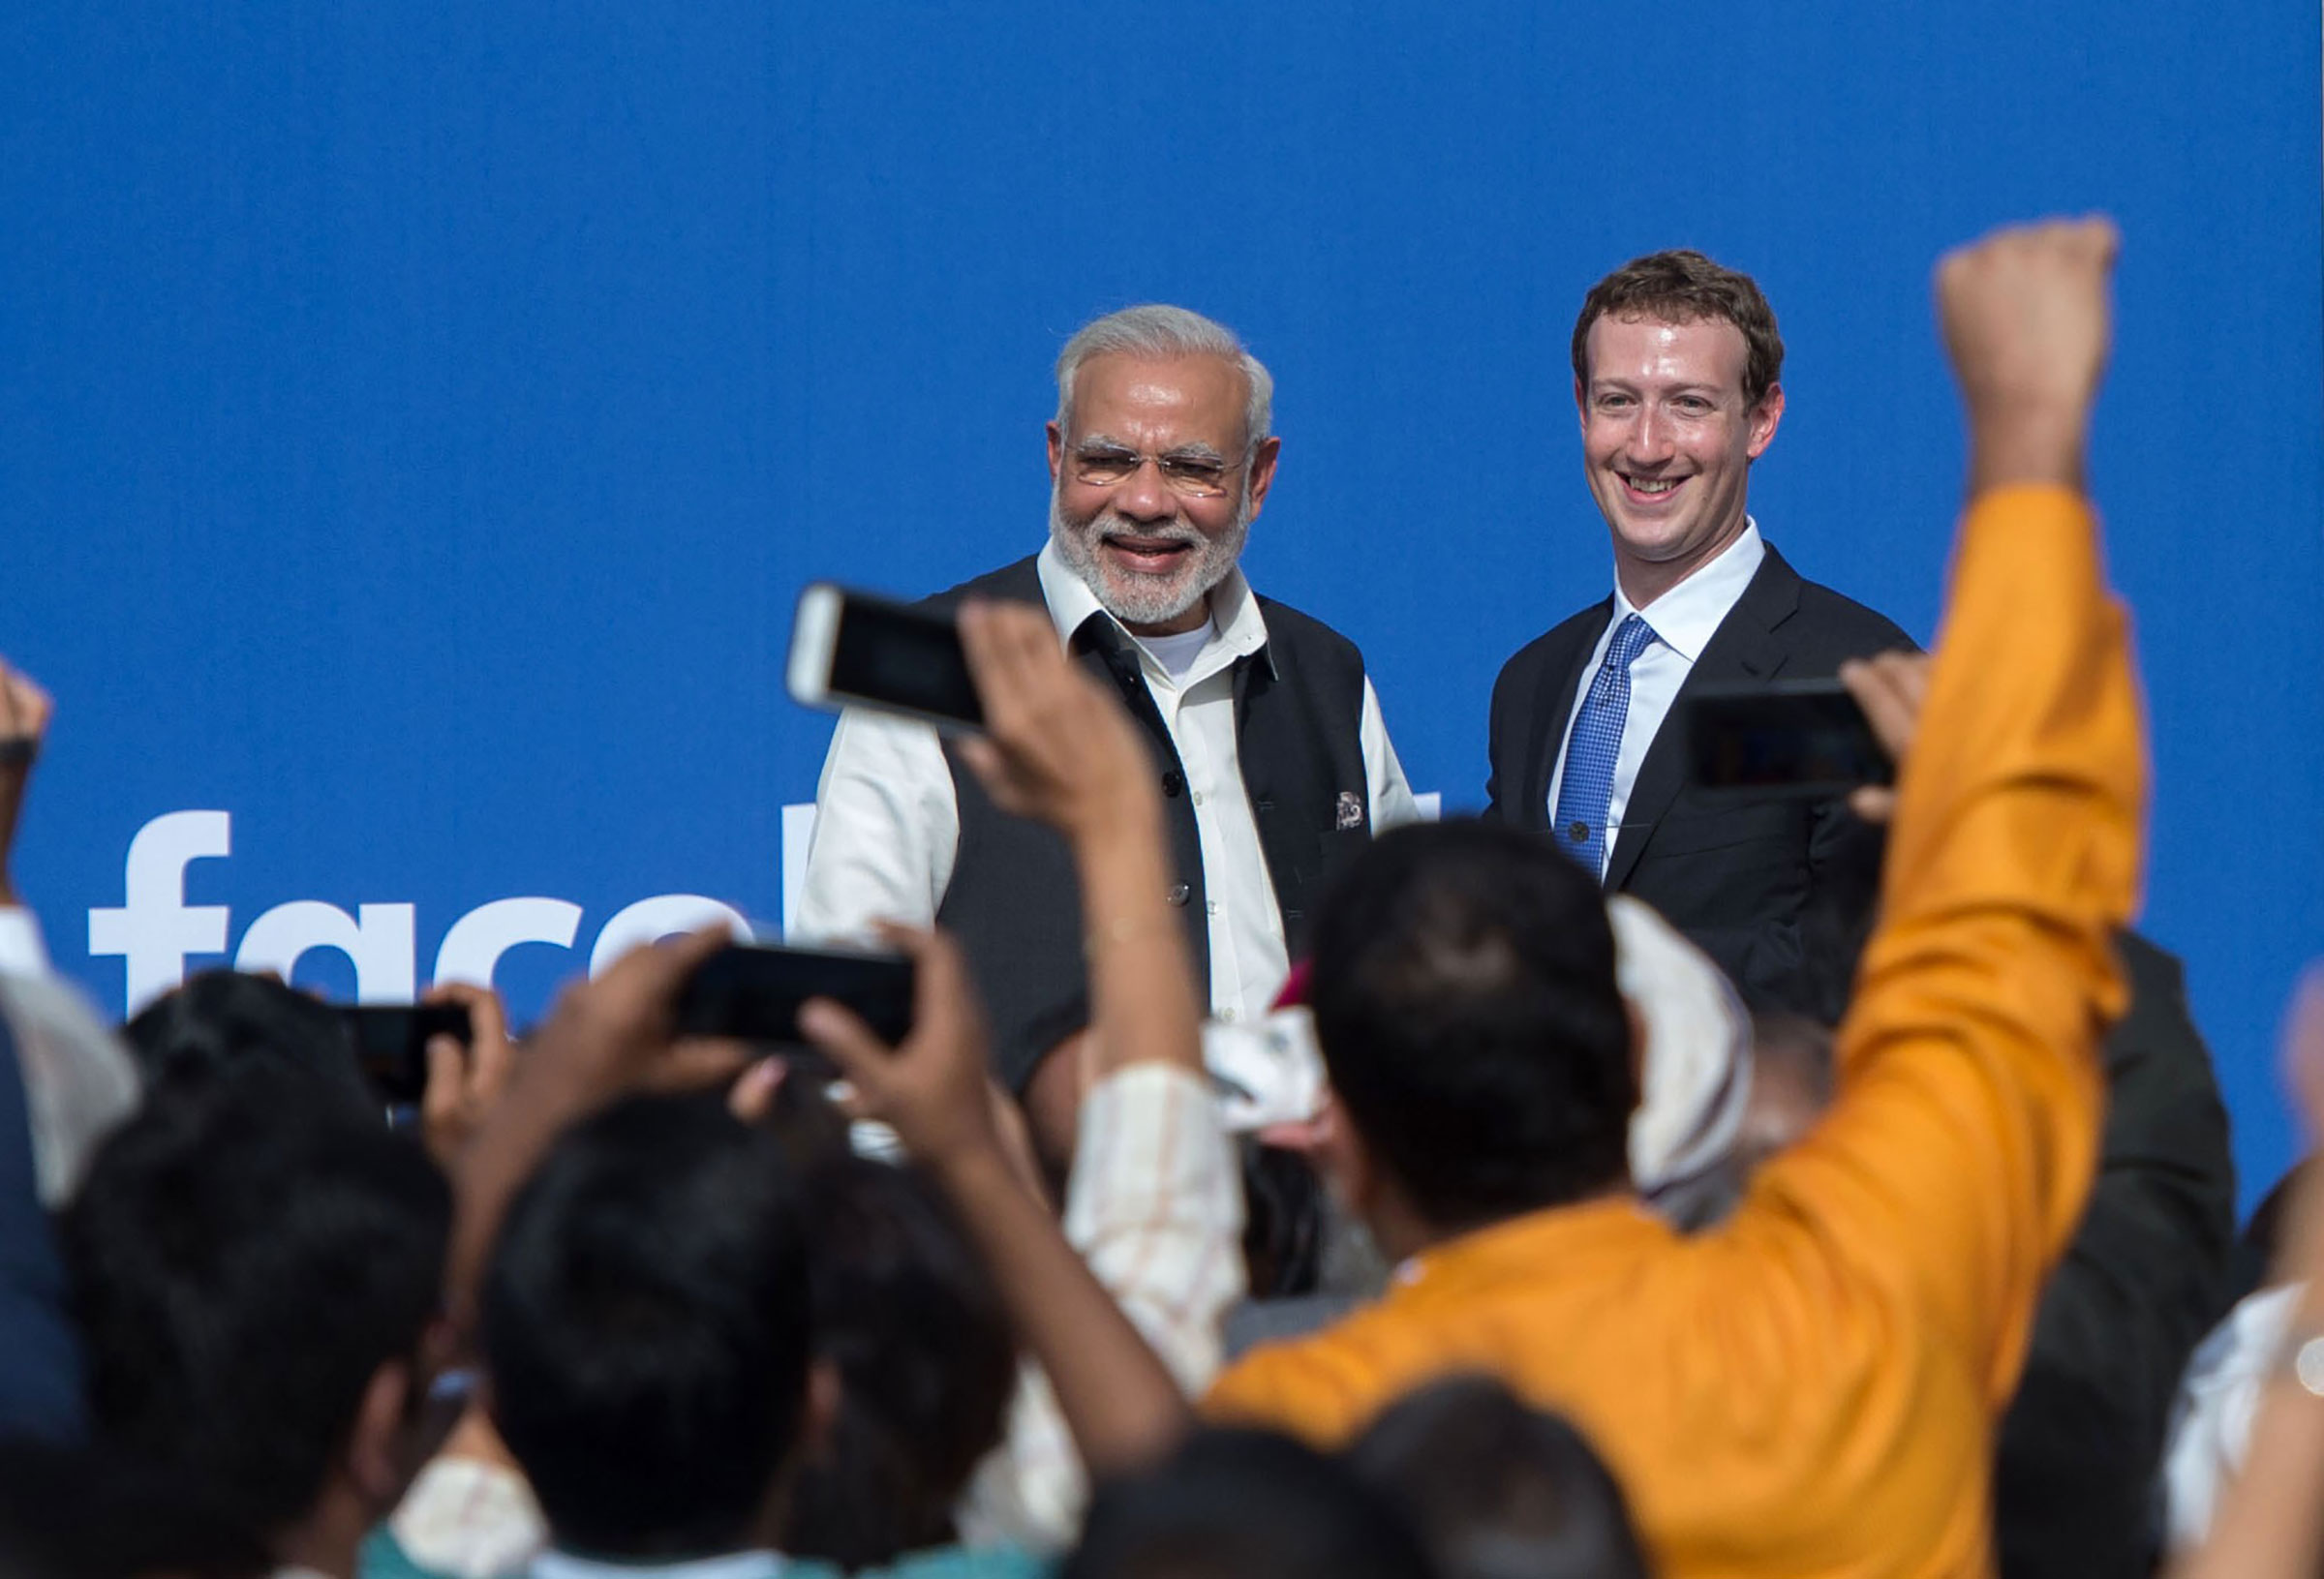 Indian Prime Minister Narendra Modi and Facebook CEO Mark Zuckerberg attend a meeting at Facebook headquarters in Menlo Park, California, on September 27, 2015.